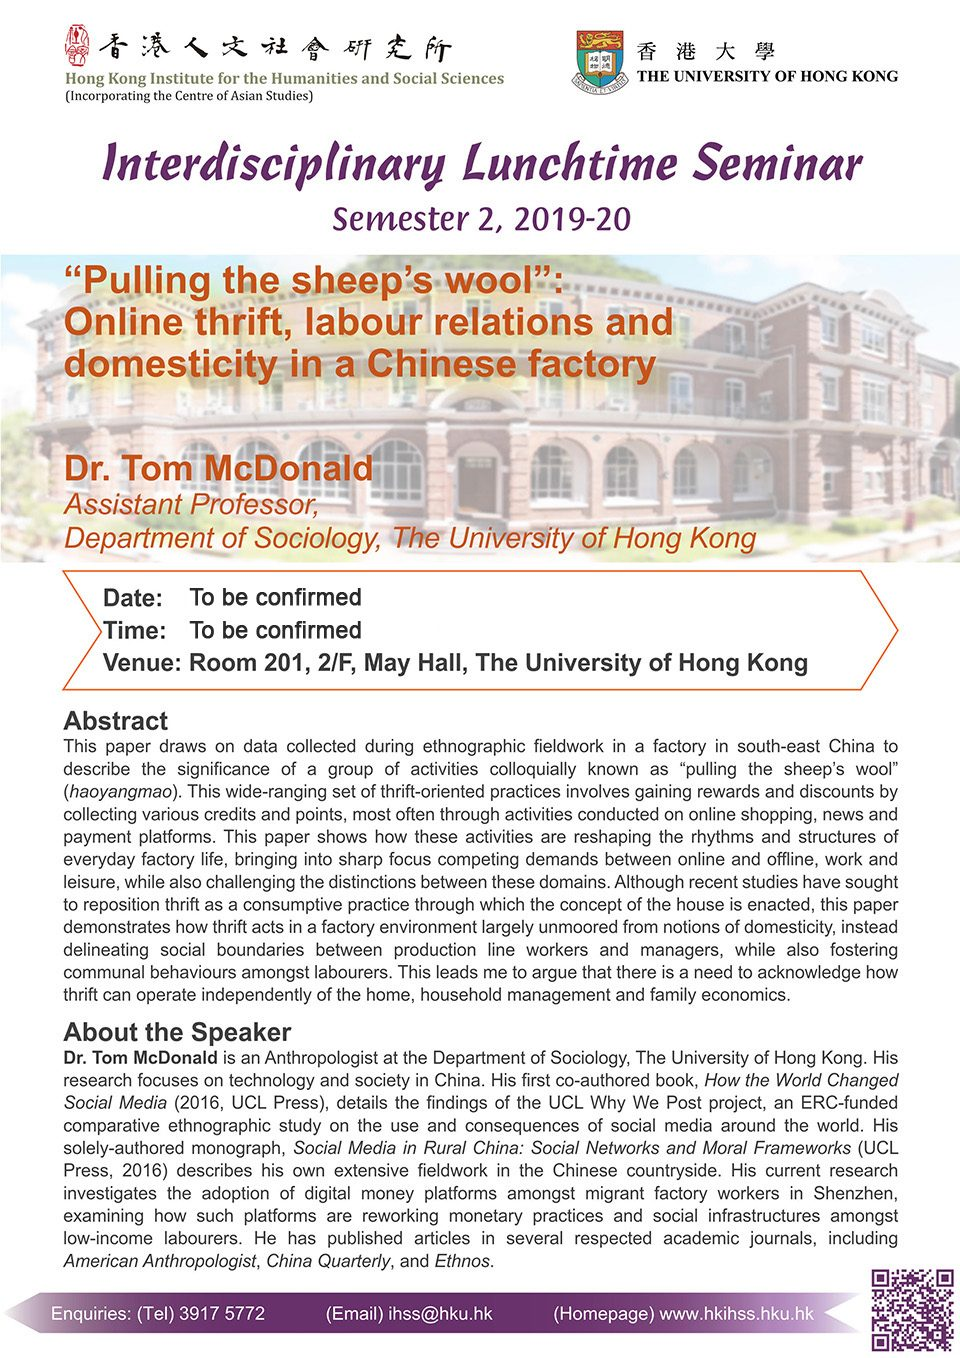 "Interdisciplinary Lunchtime Seminar on """"Pulling the sheep's wool"": Online thrift, labour relations and domesticity in a Chinese factory"" by Dr. Tom McDonald"